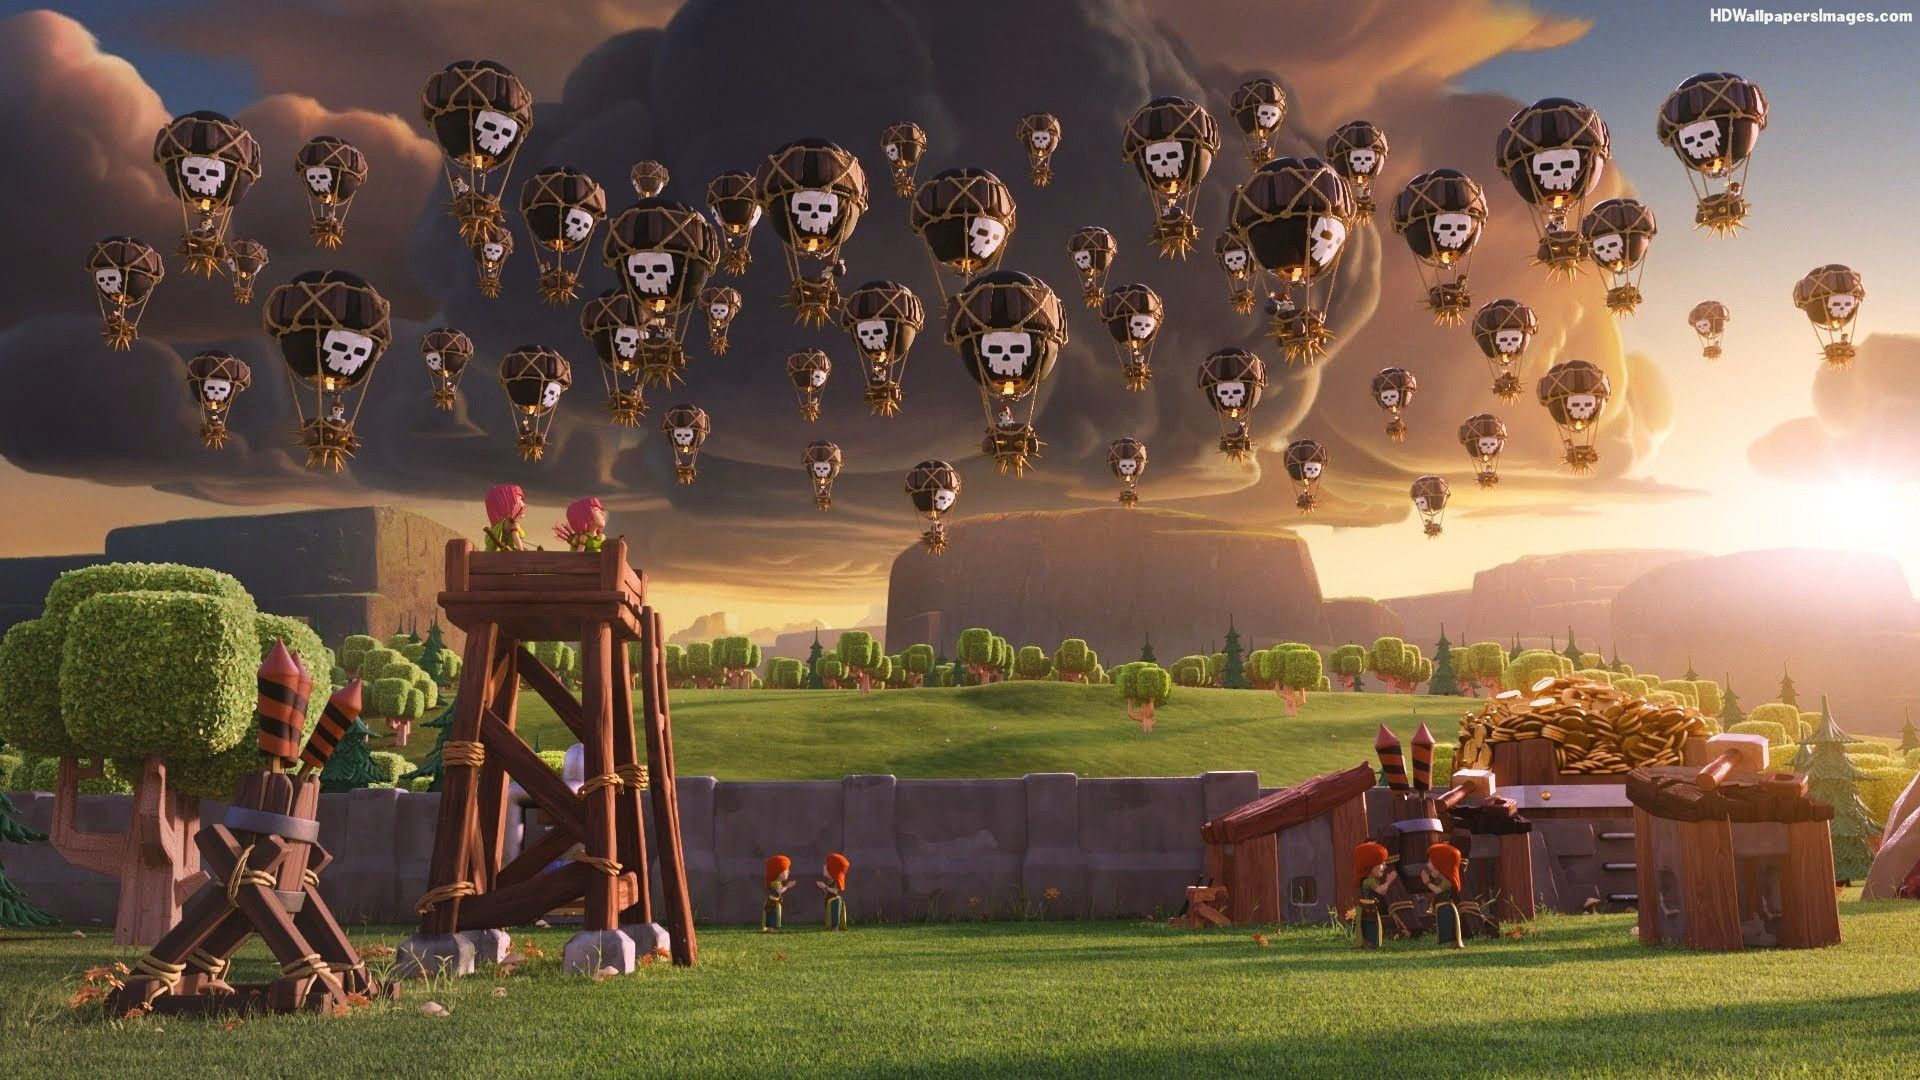 clash of clans wallpaper [1920x1080] : wallpapers